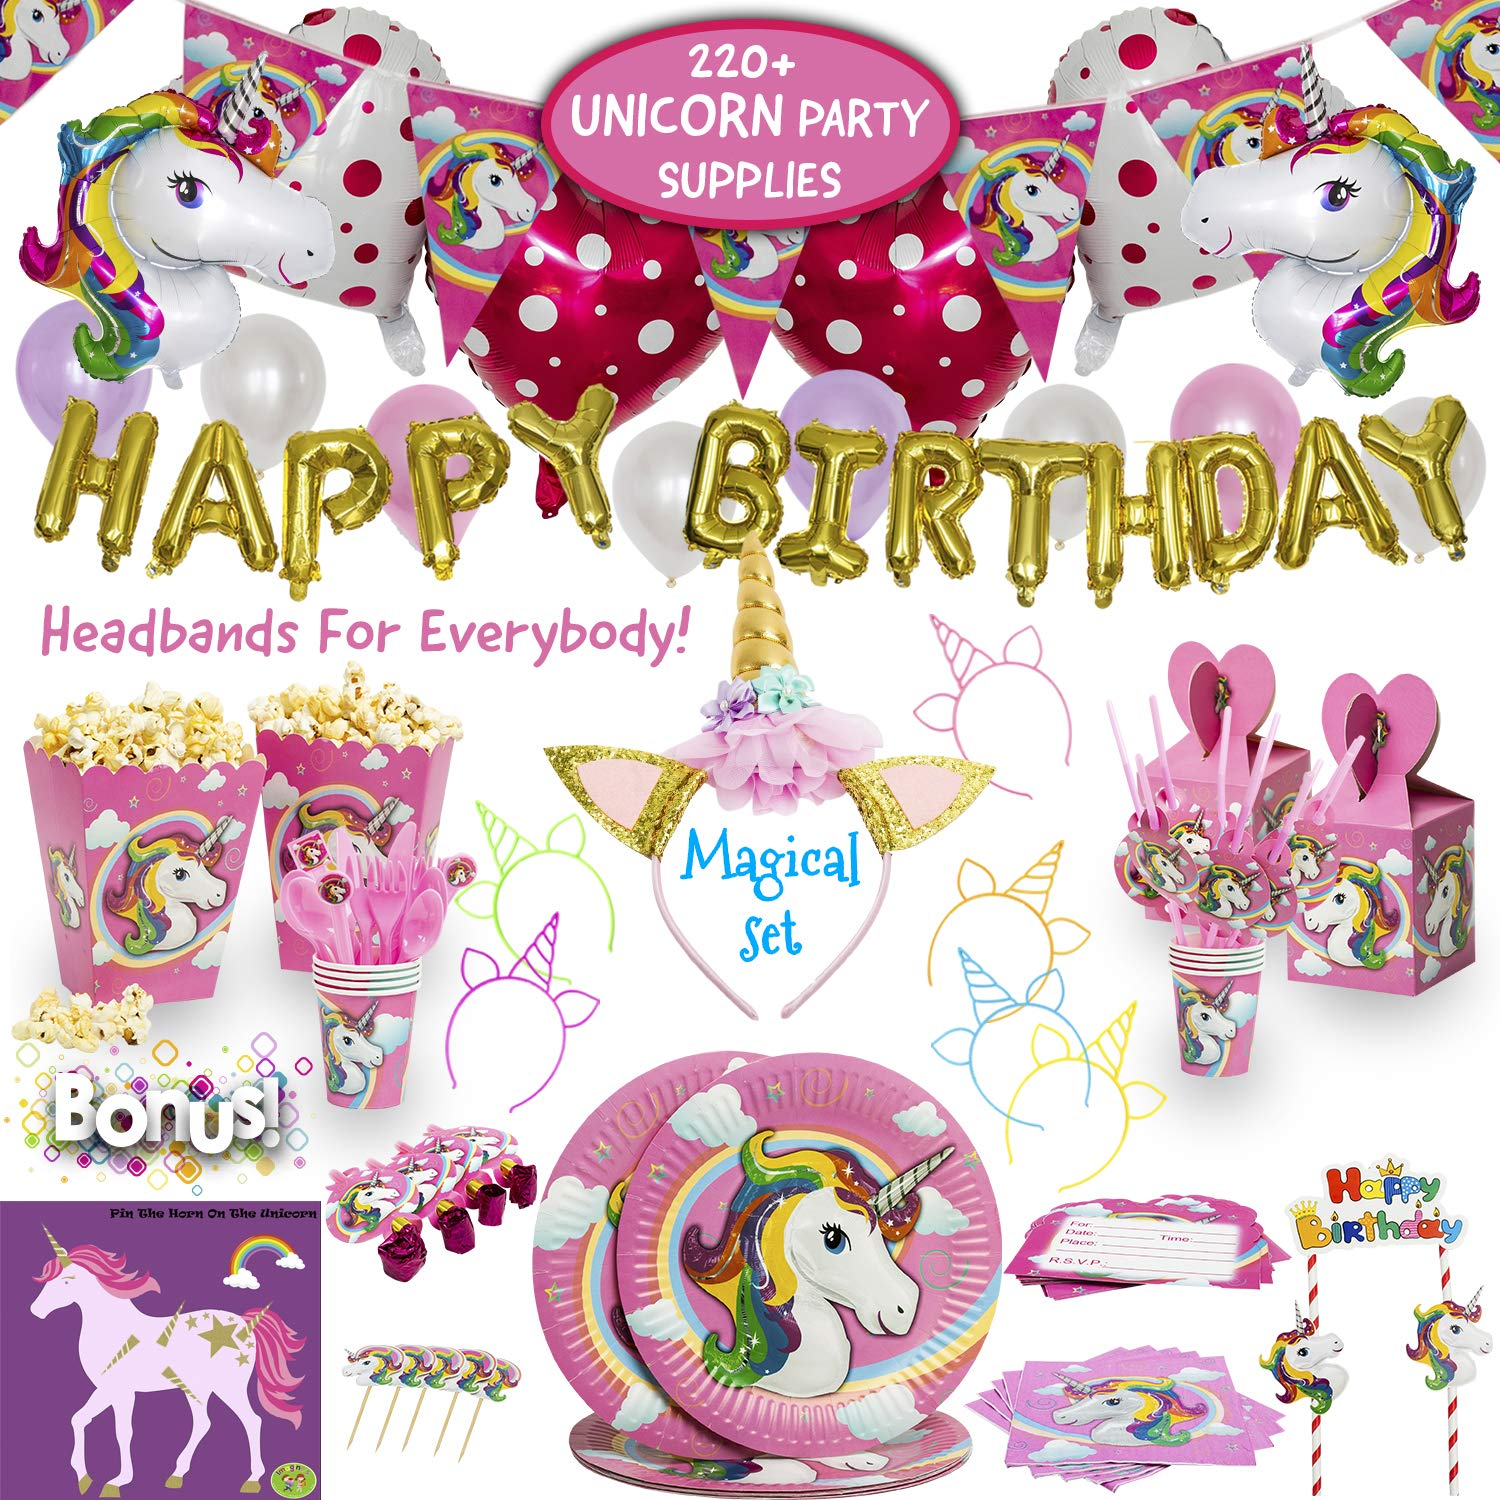 Imagine's Complete Unicorn Party Supplies - 220+ Piece Rainbow Girls Birthday Supplies Pack with Unicorn Balloons, Headbands, Party Favors for Kids, MORE - Magical Unicorn Sleepover Party Set for 15 by Imagine's